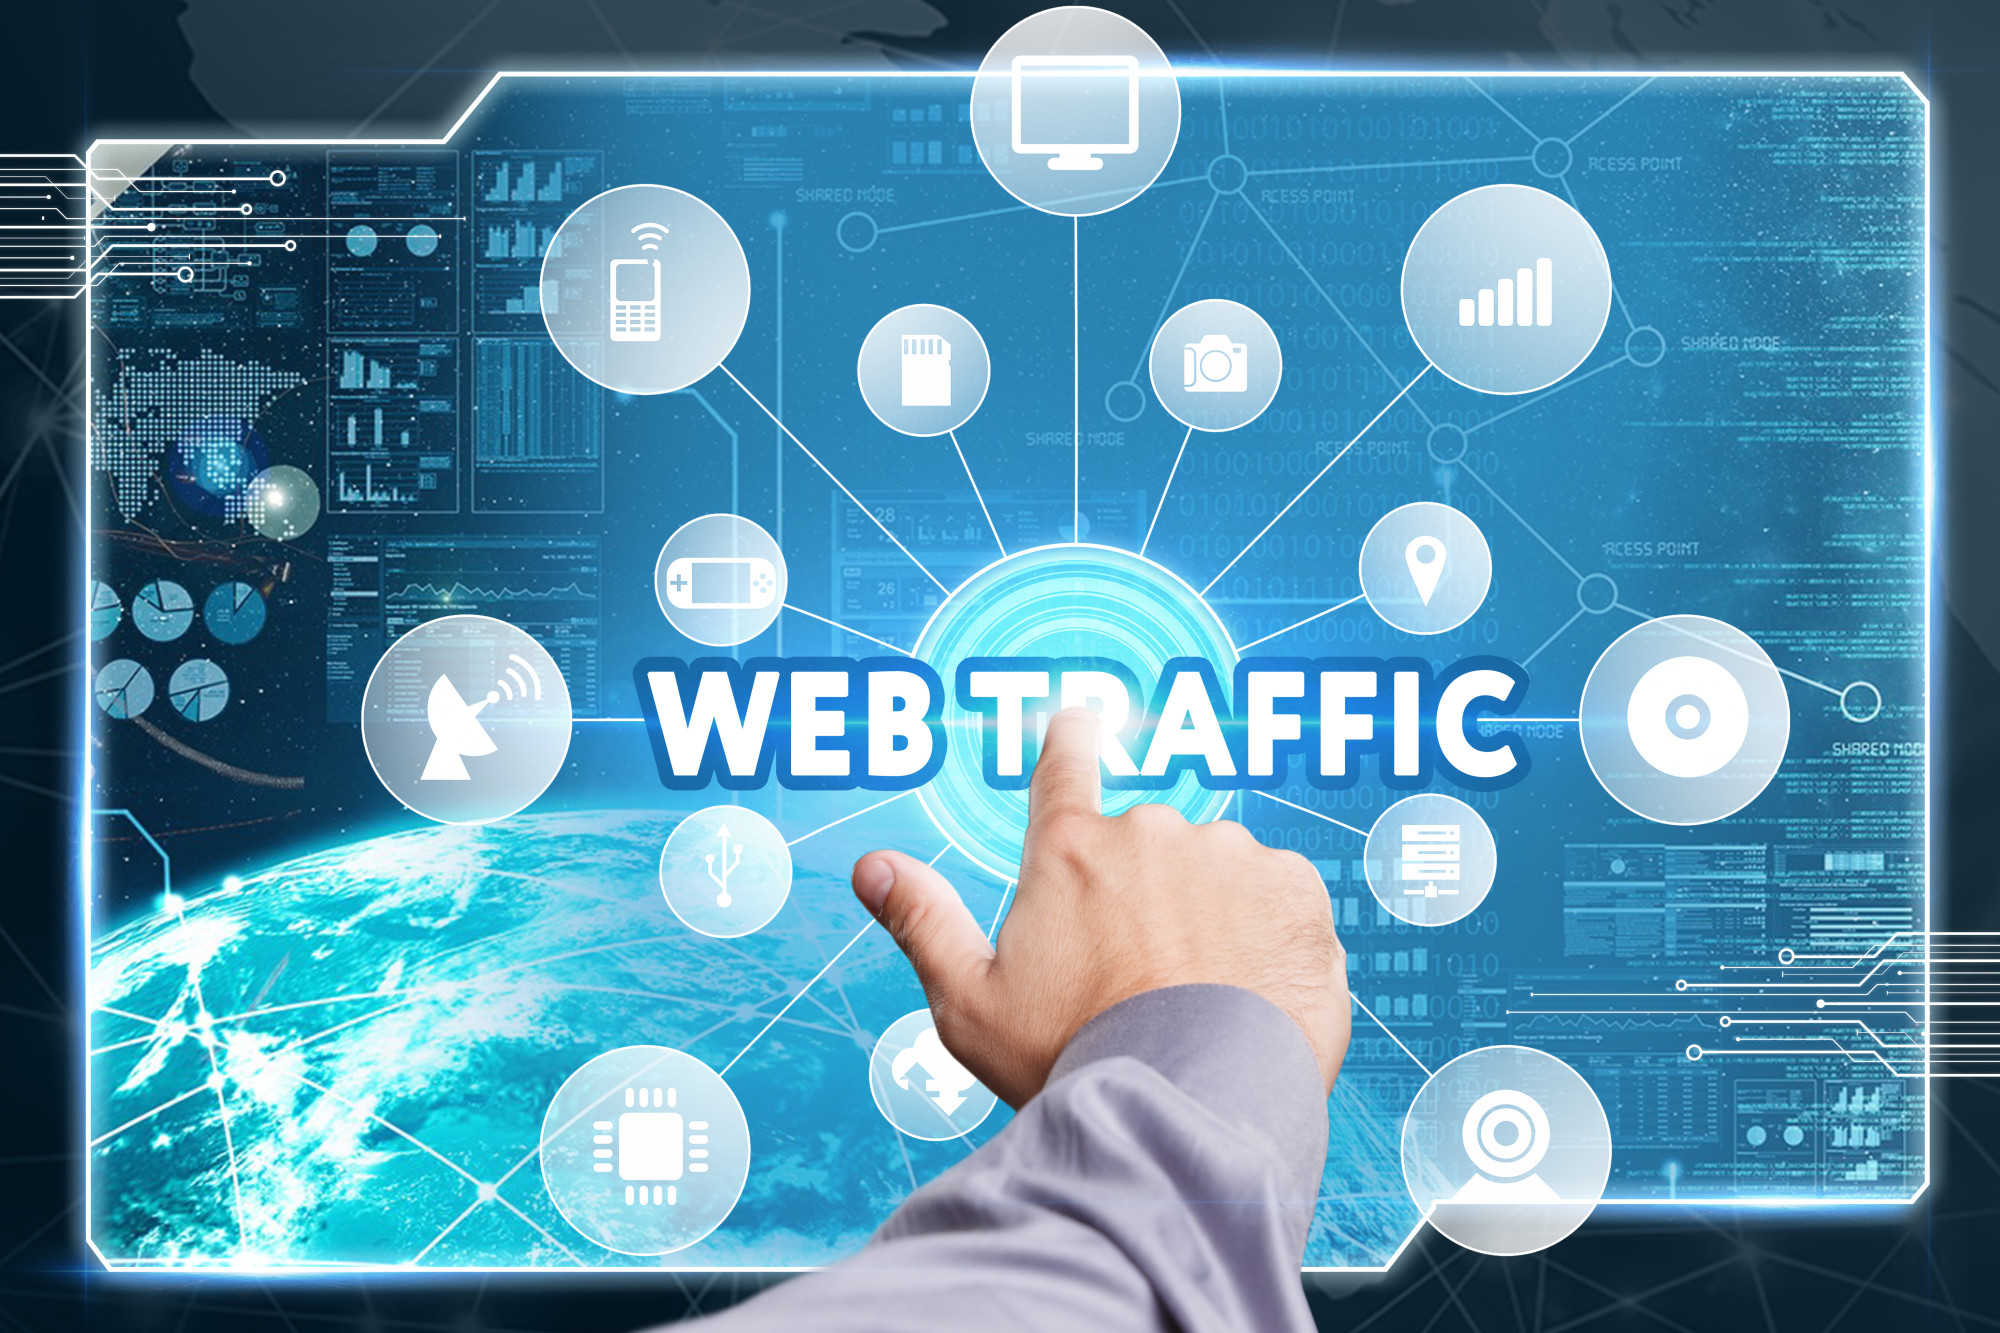 web traffic text and icons with finger pointing